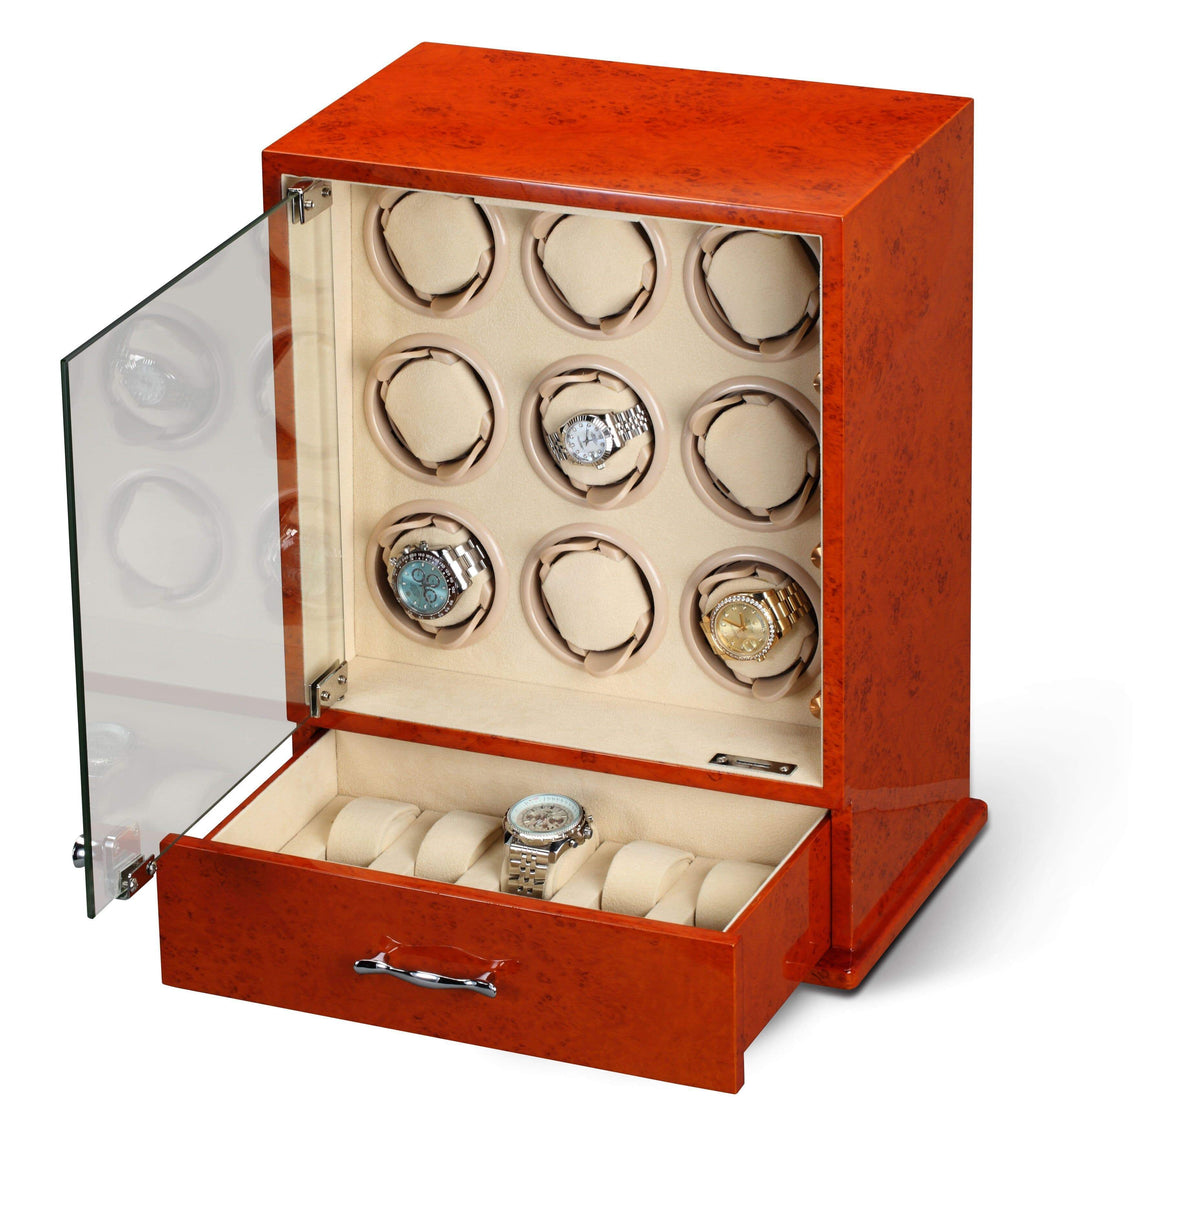 Diplomat Estate Burl Wood Finish Nine Watch Winder with Cream Interior and Additional Storage for 8 Watches and Smart Internal Bi-Directional Timer Control Armadillo Safe and Vault